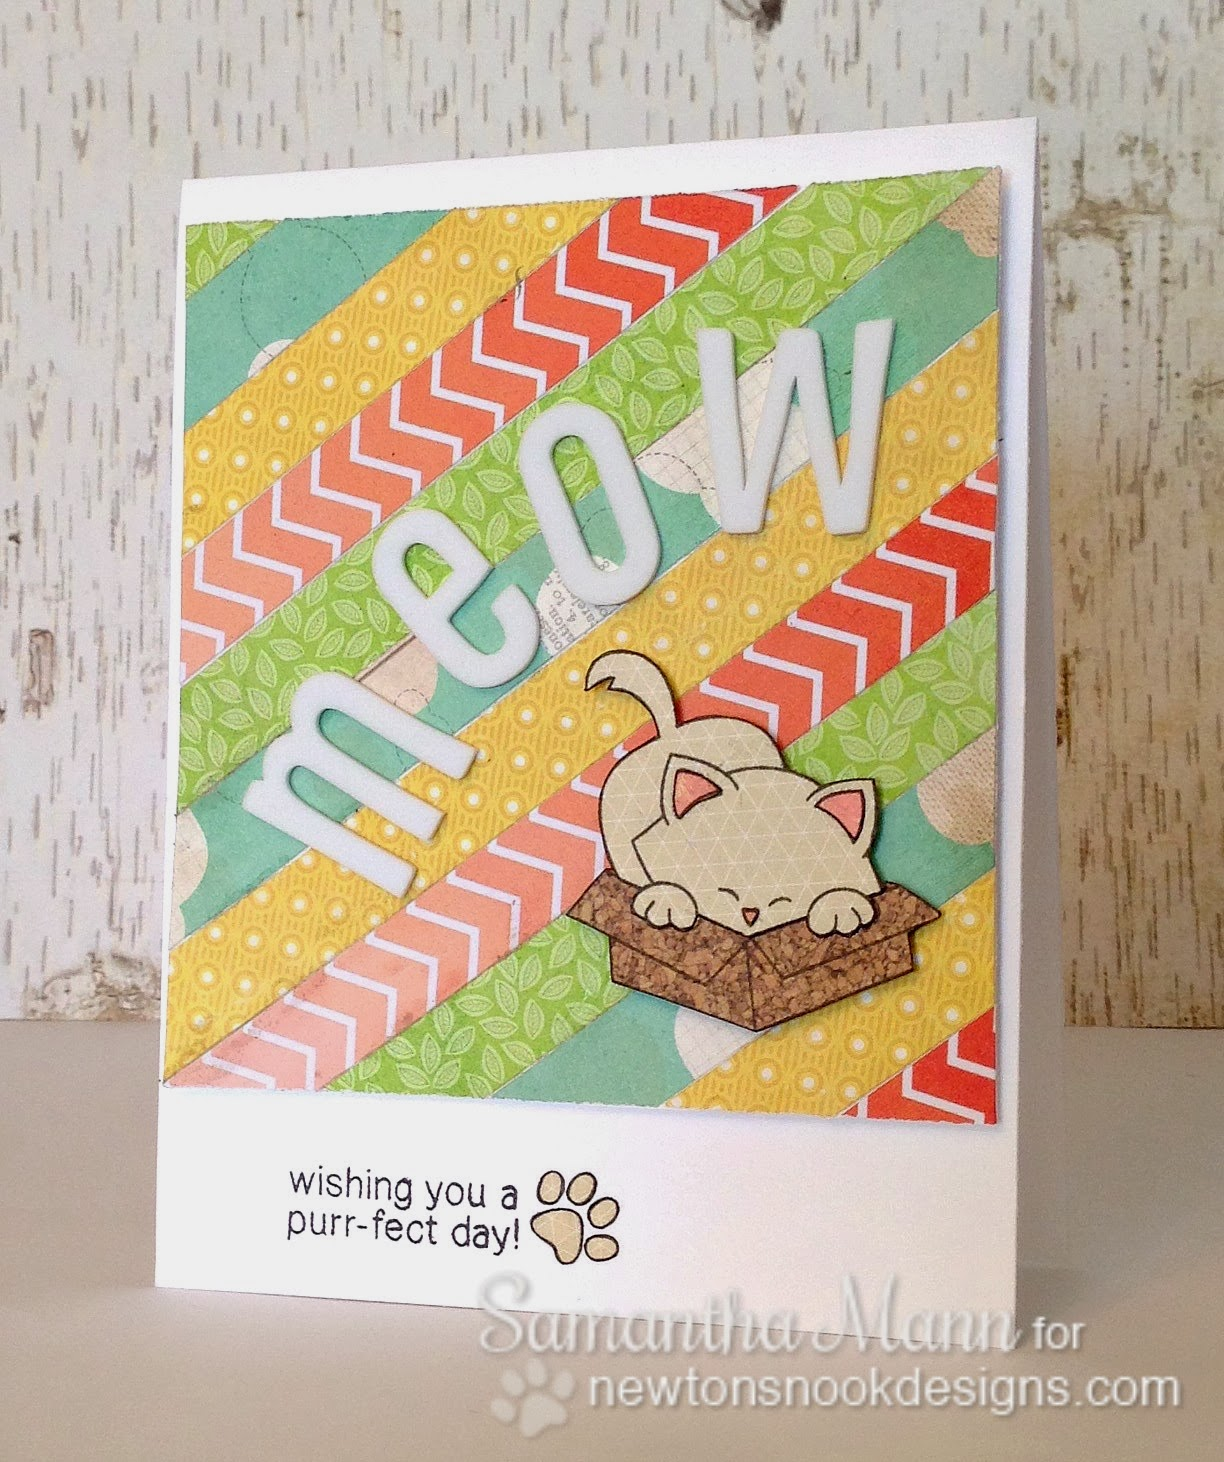 Inky Paws Challenge #6 by Samantha Mann using Newton's Antics Stamp Set